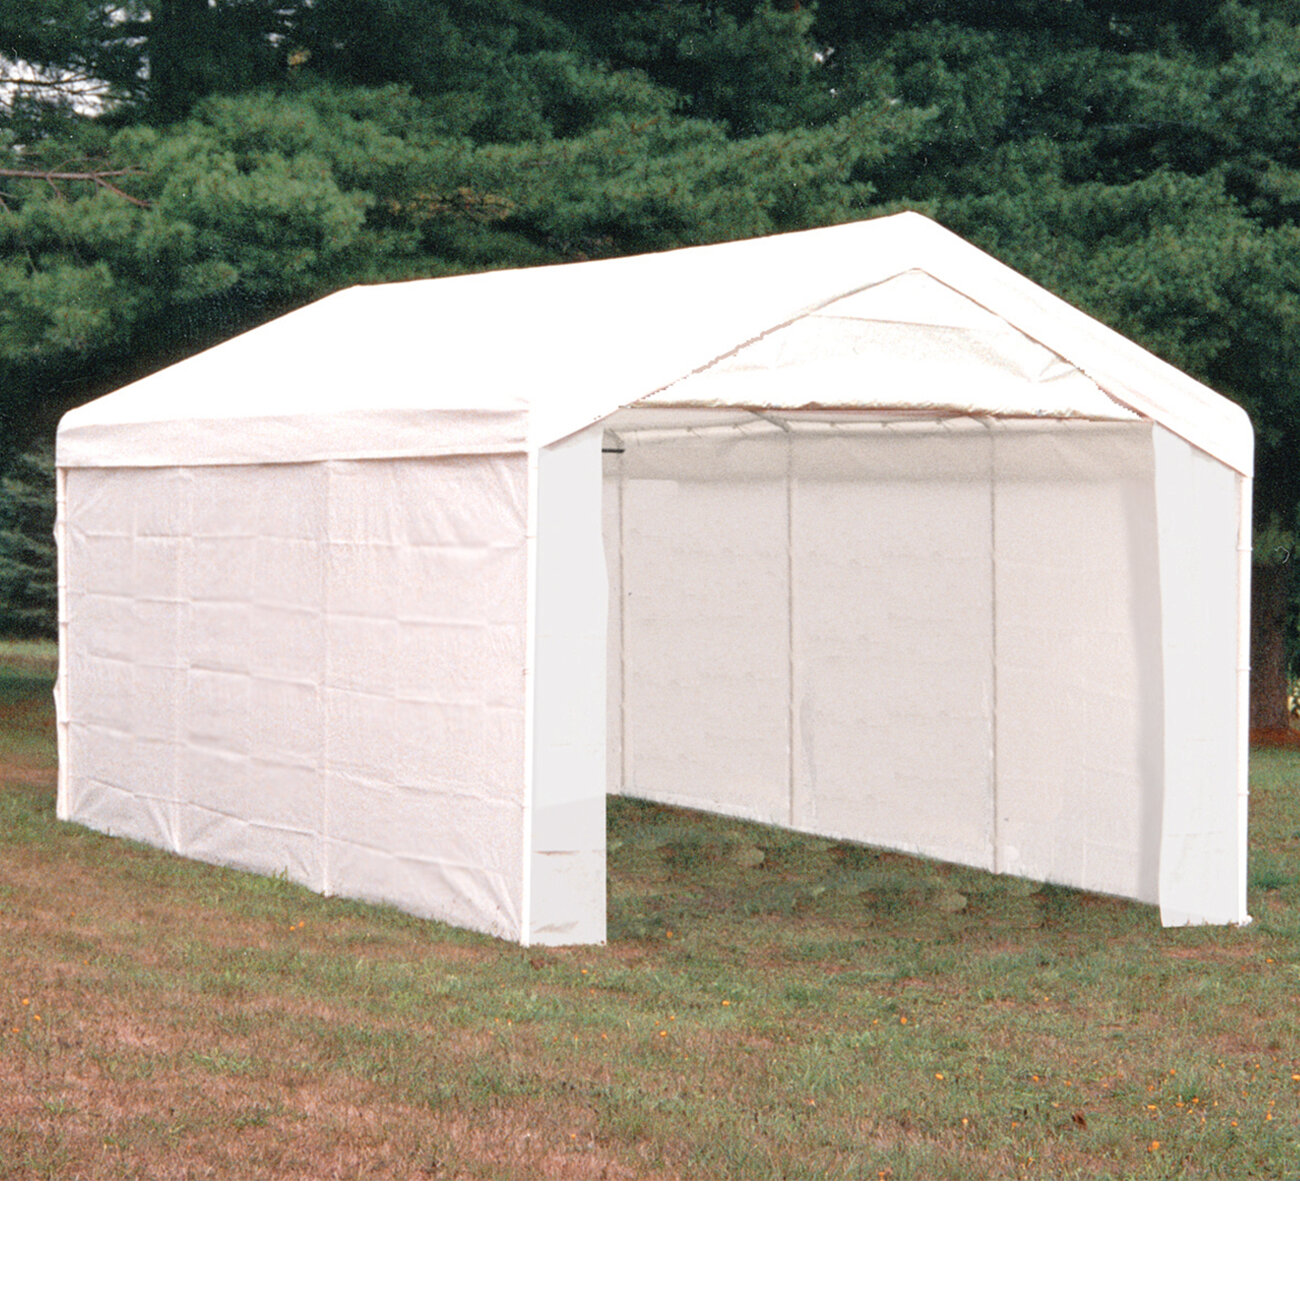 Shelterlogic Maxap 10 Ft X 20 Ft Canopy 3 In 1 Enclosure Kit Reviews Wayfair